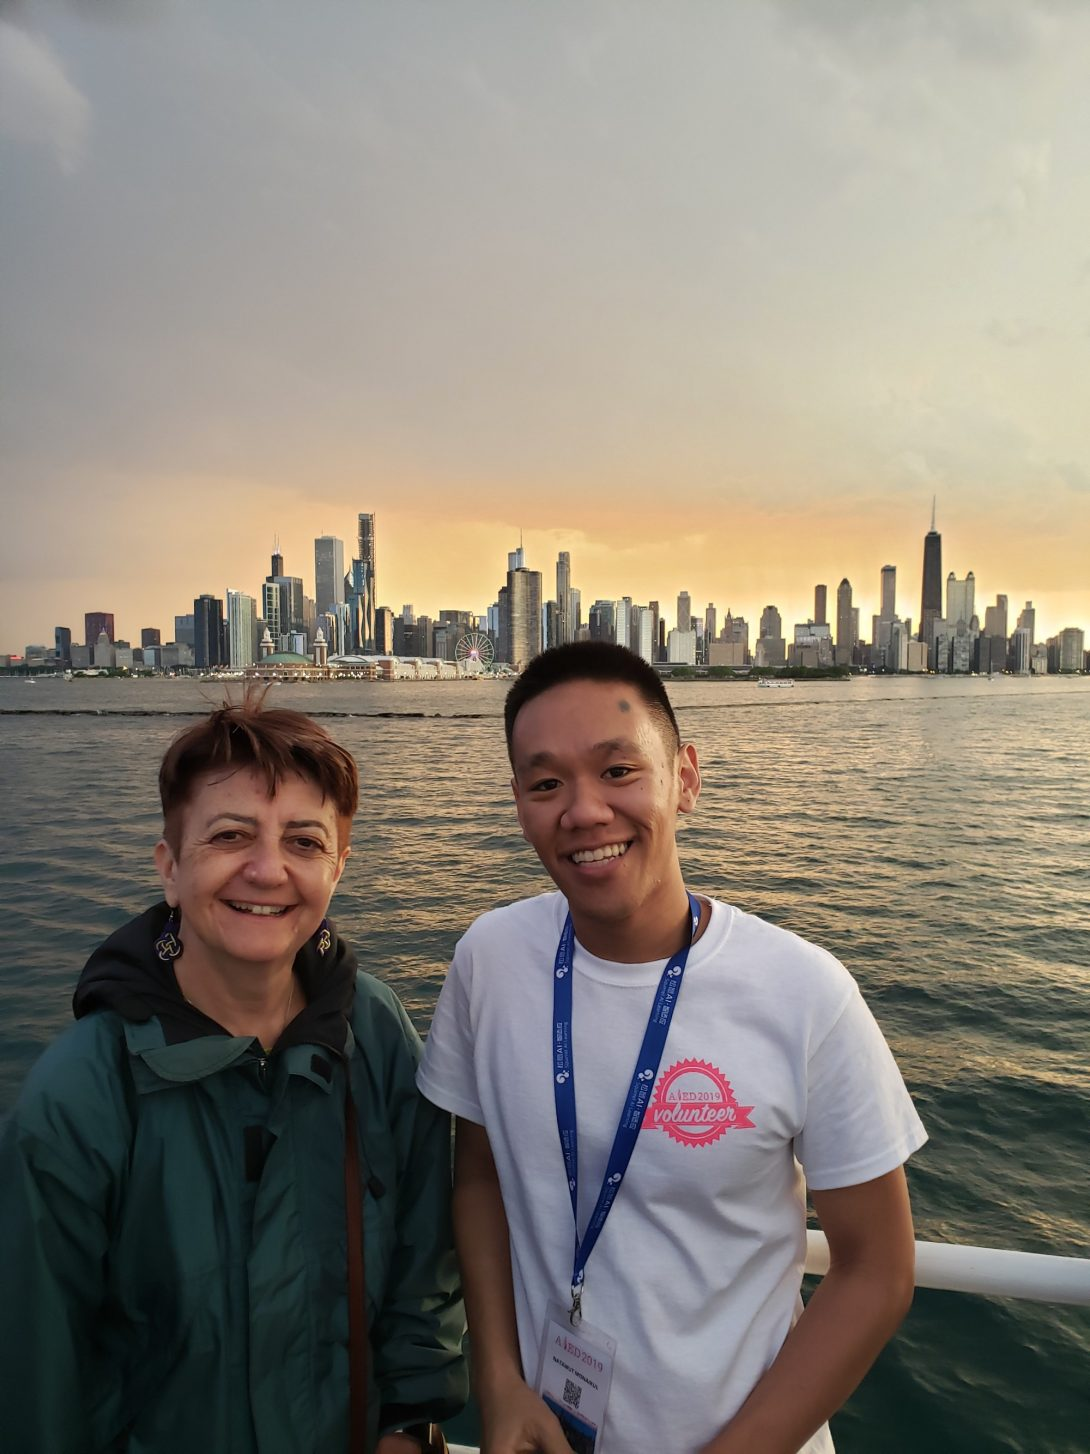 Professor Barbara Di Eugenio and Natawut Monaikul on a boat with the Chicago skyline in the background